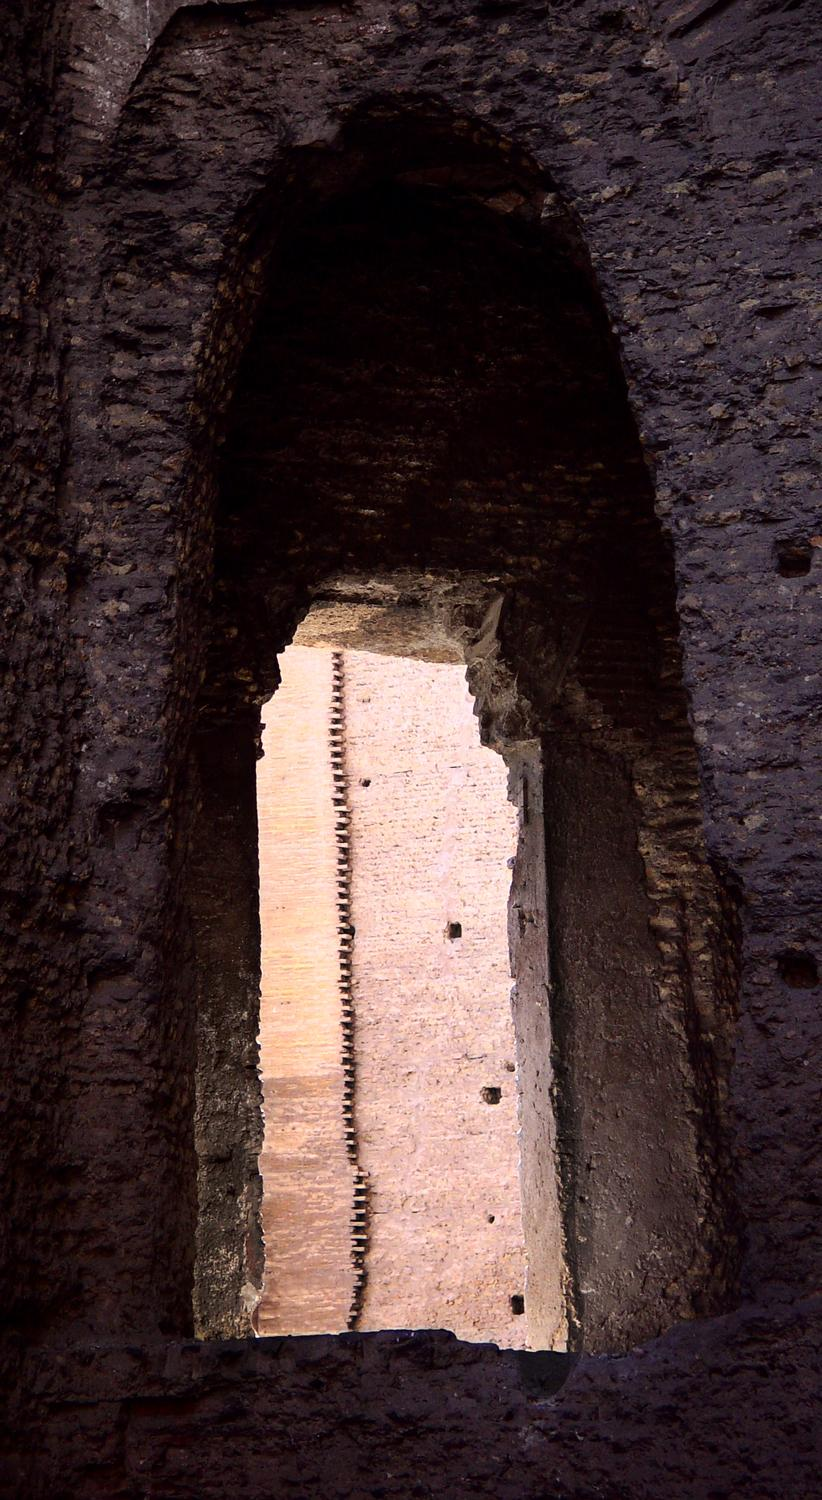 - A detail at the baths of Caracalla - A trip to Rome - by Tony Karp - Rome - Vatican - Gubbio - Viterbo - Spoleto - - - art  - photography - by Tony Karp